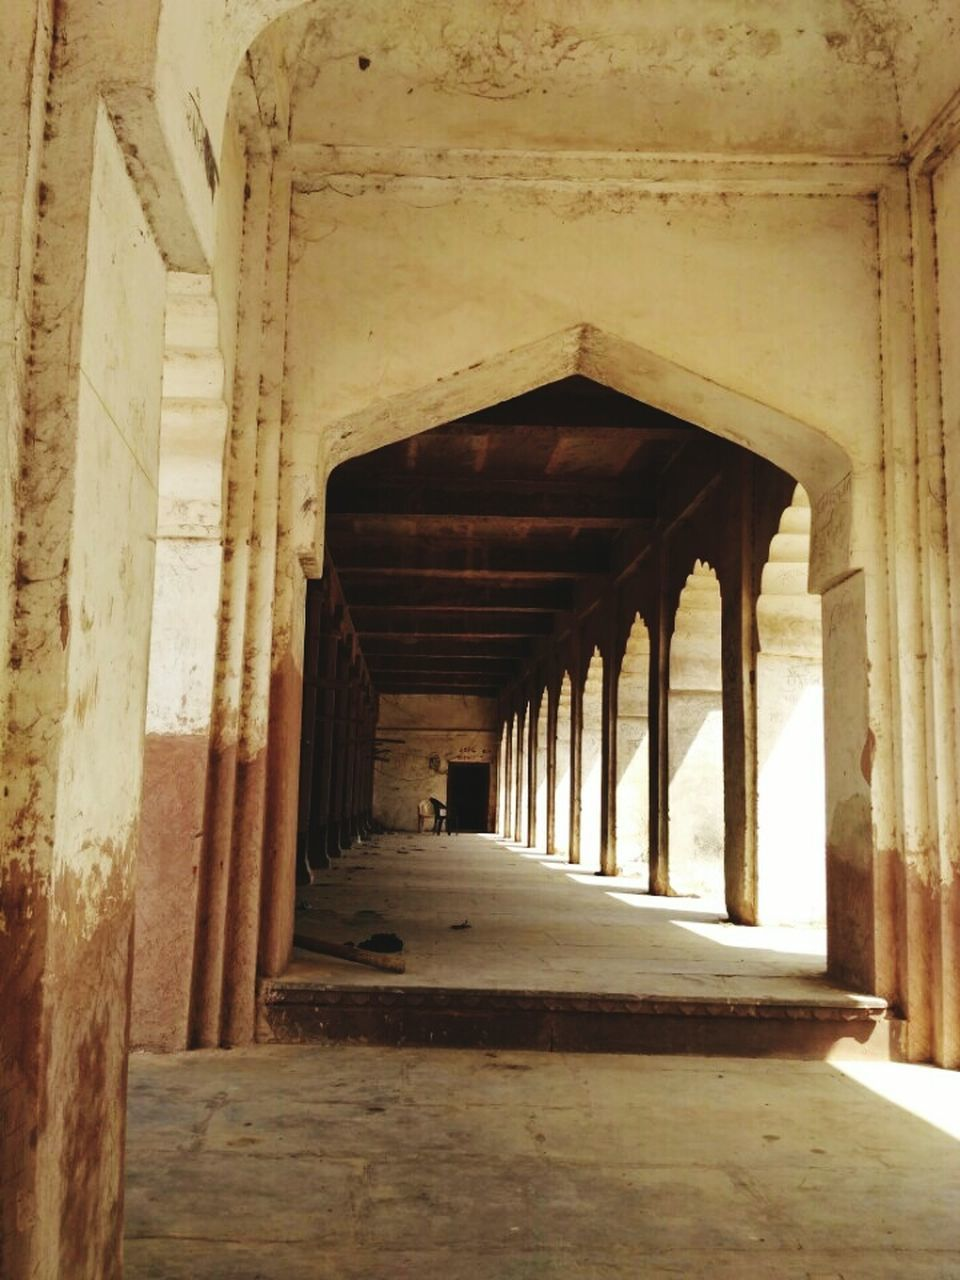 indoors, architecture, built structure, corridor, the way forward, no people, architectural column, sunlight, day